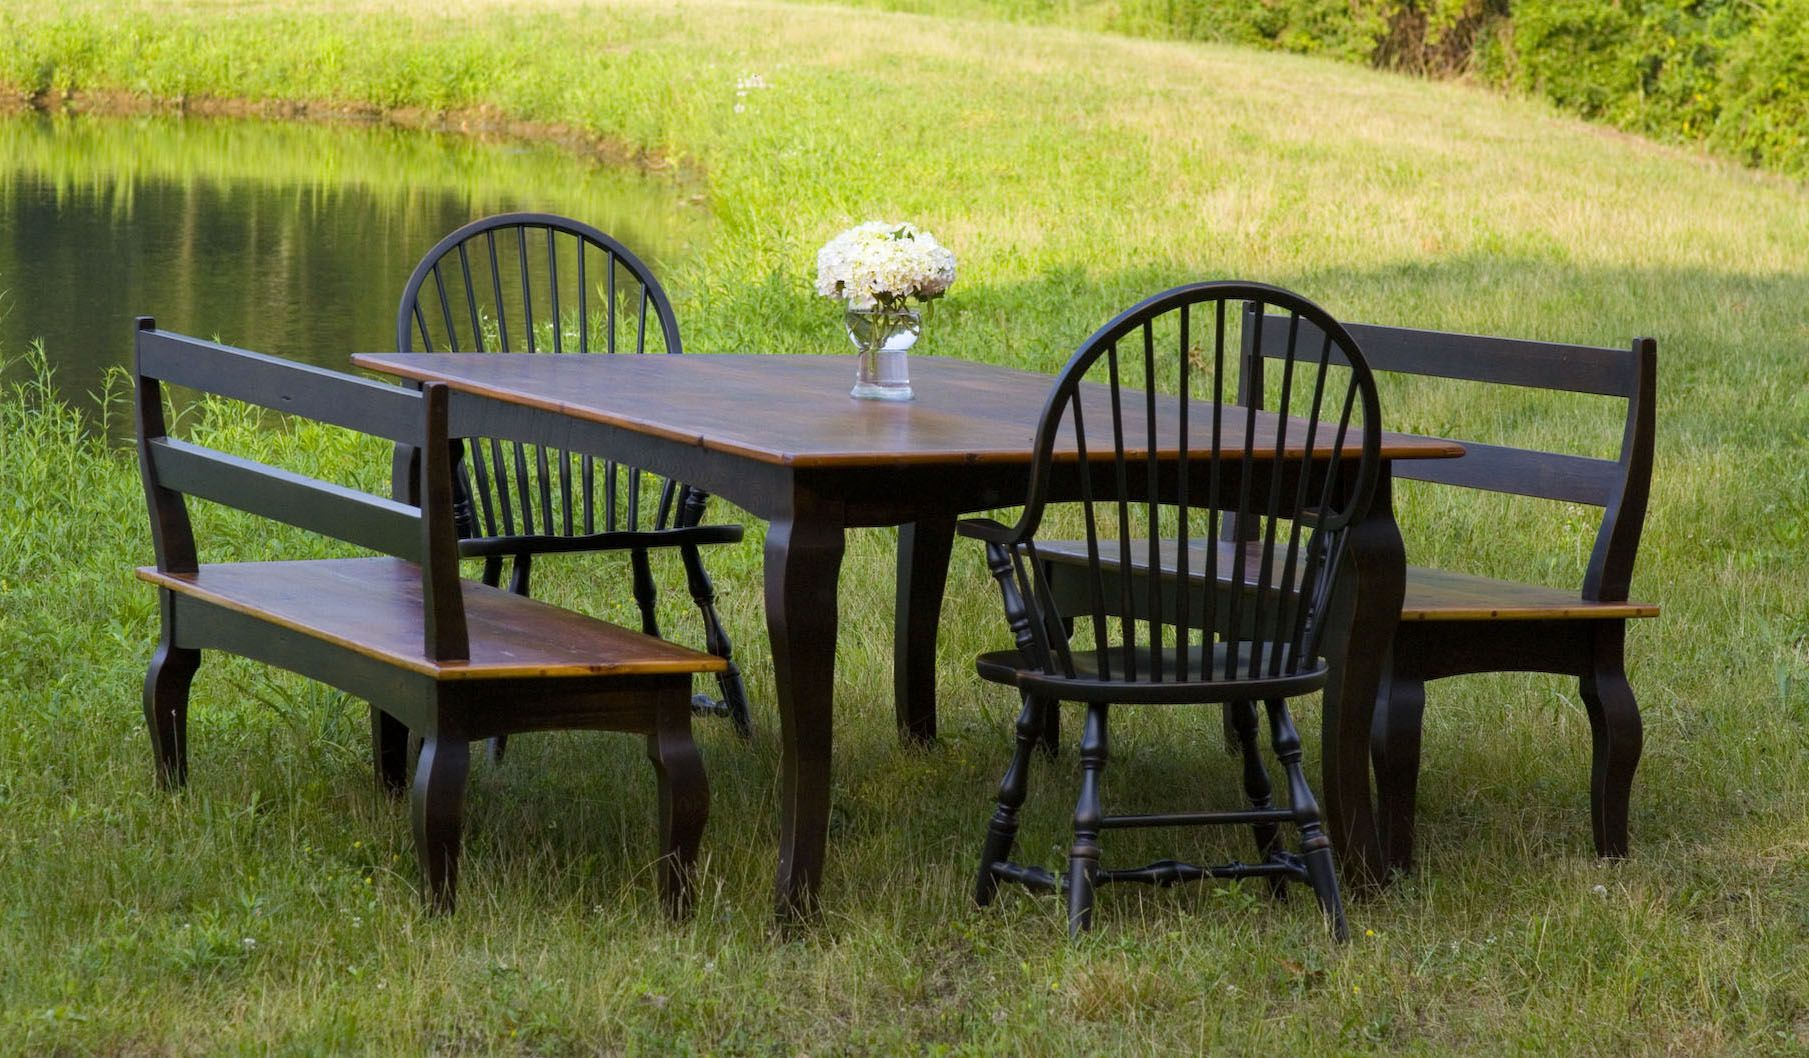 Farm table with matching benches by the lake (With images